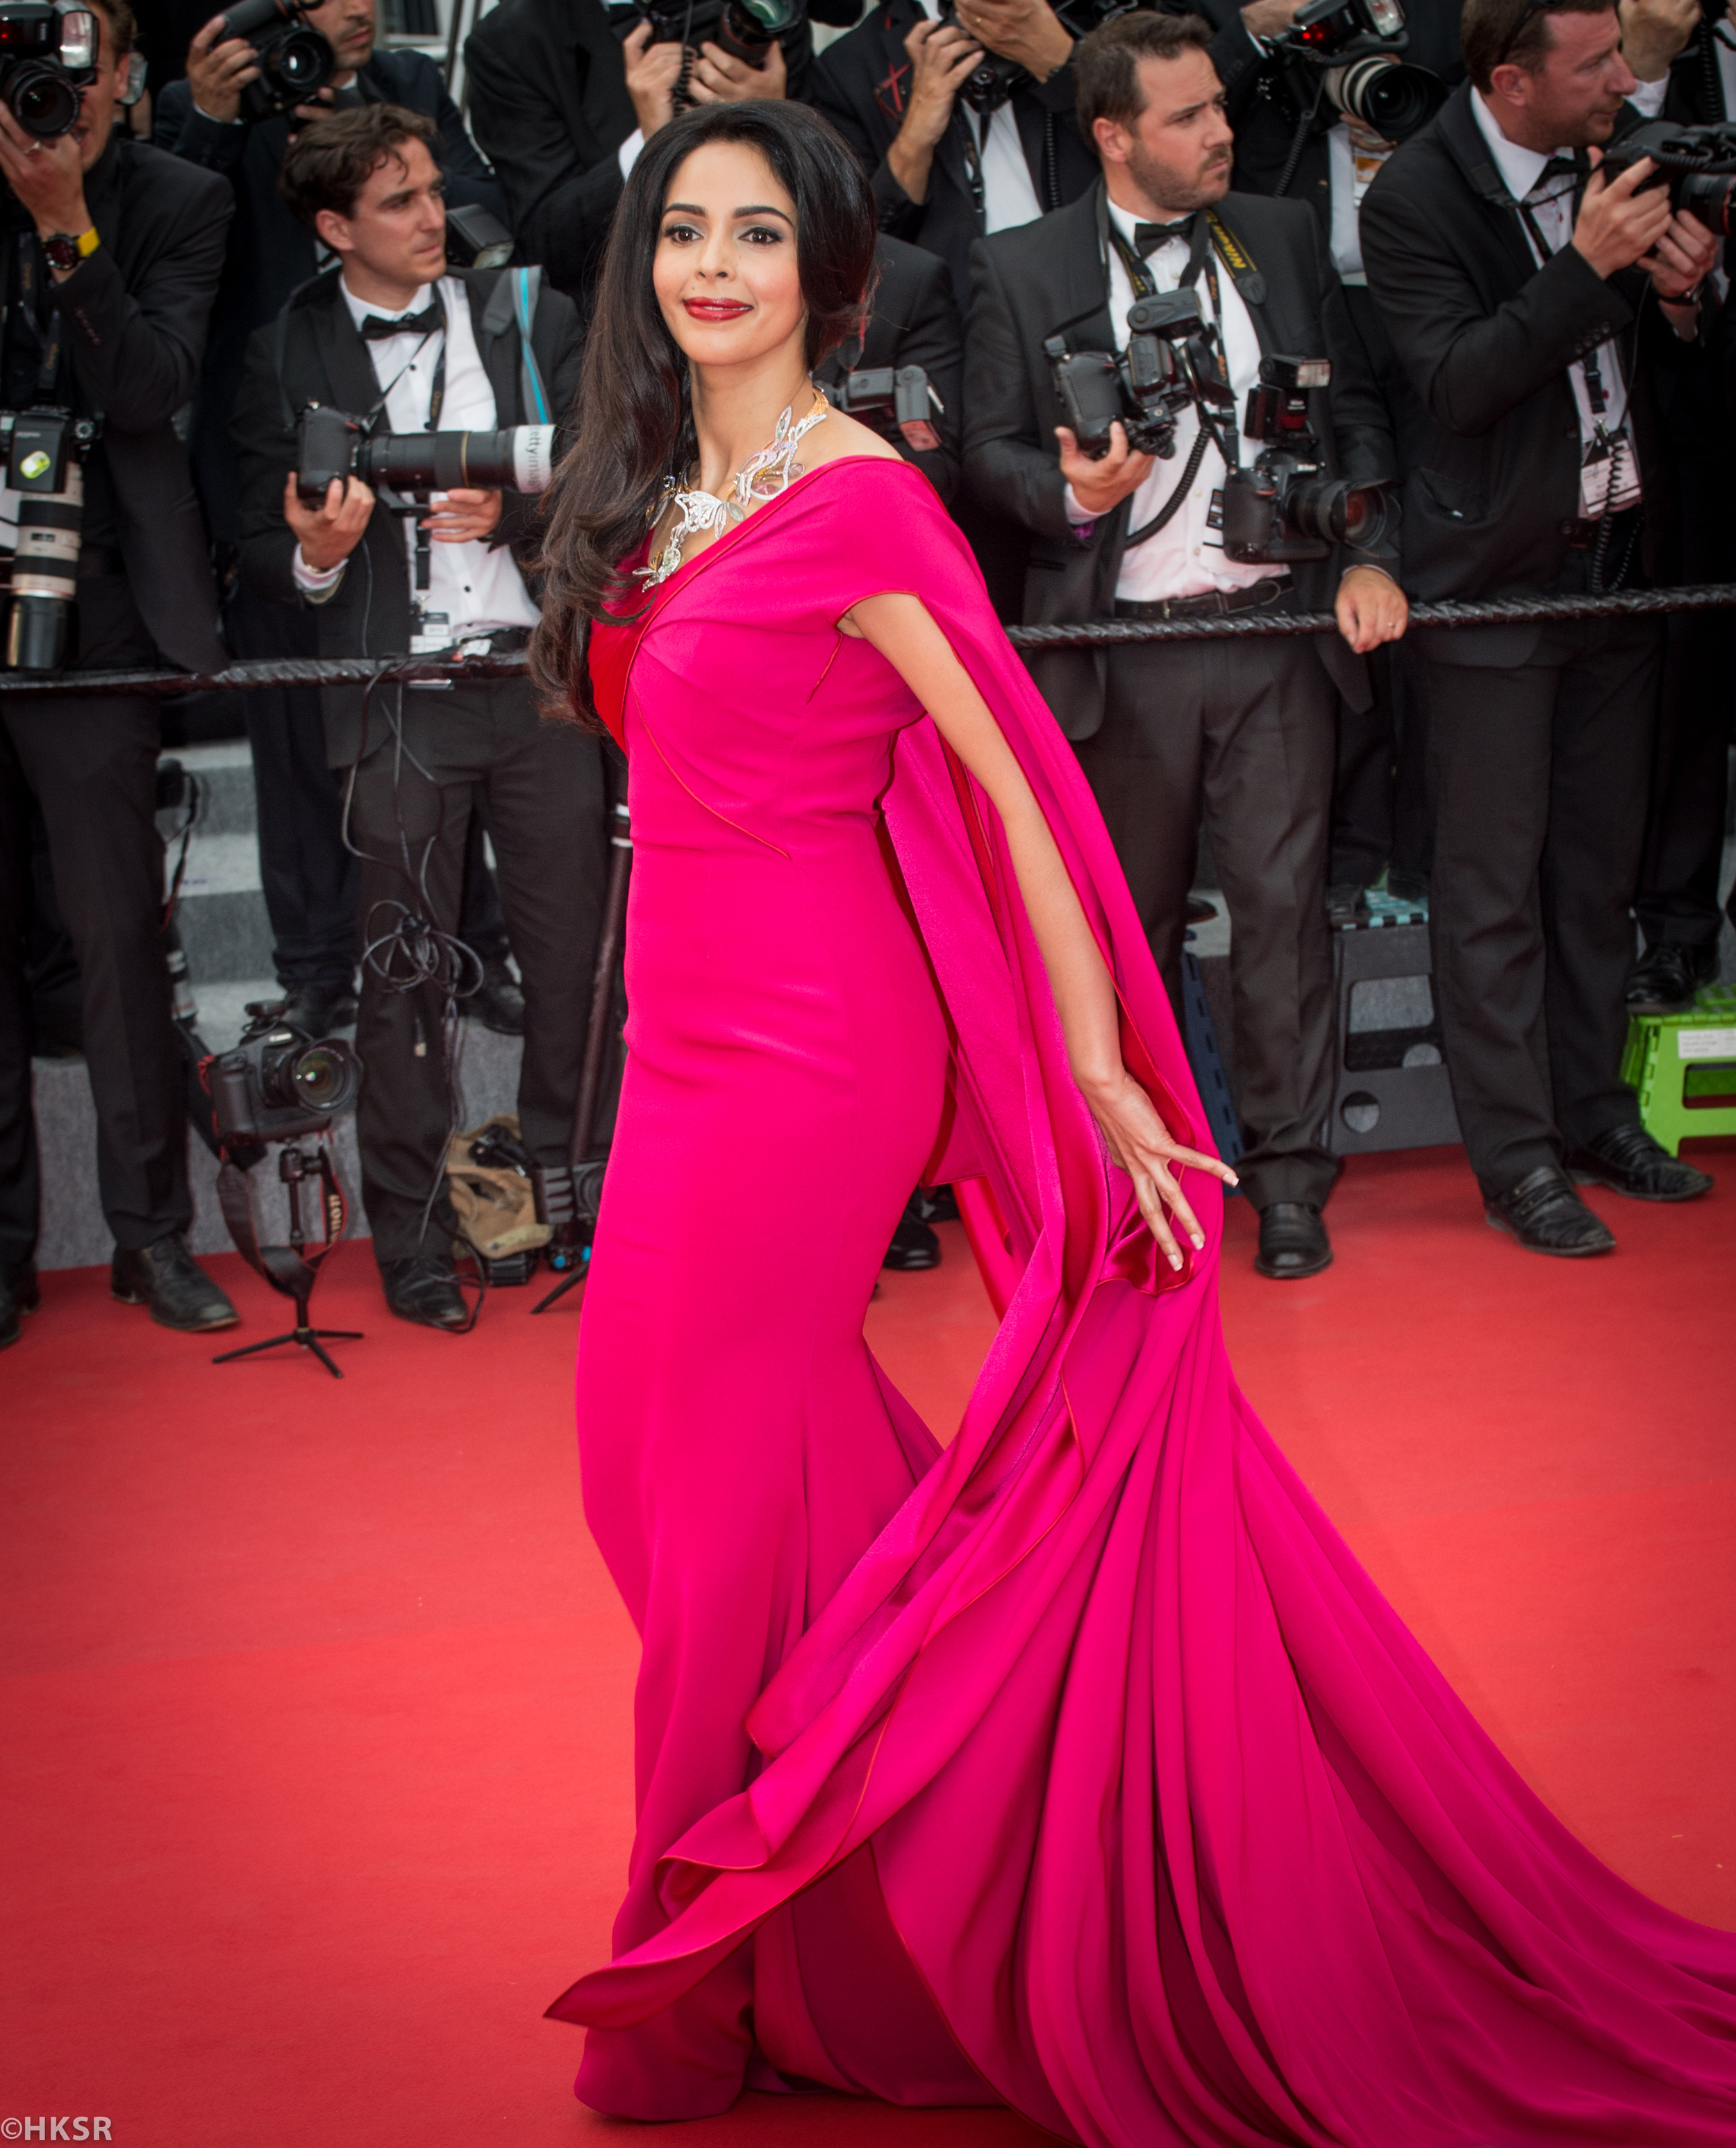 Mallika Sherawat in   Alexis Mabille gown Cannes 2015 red carpet